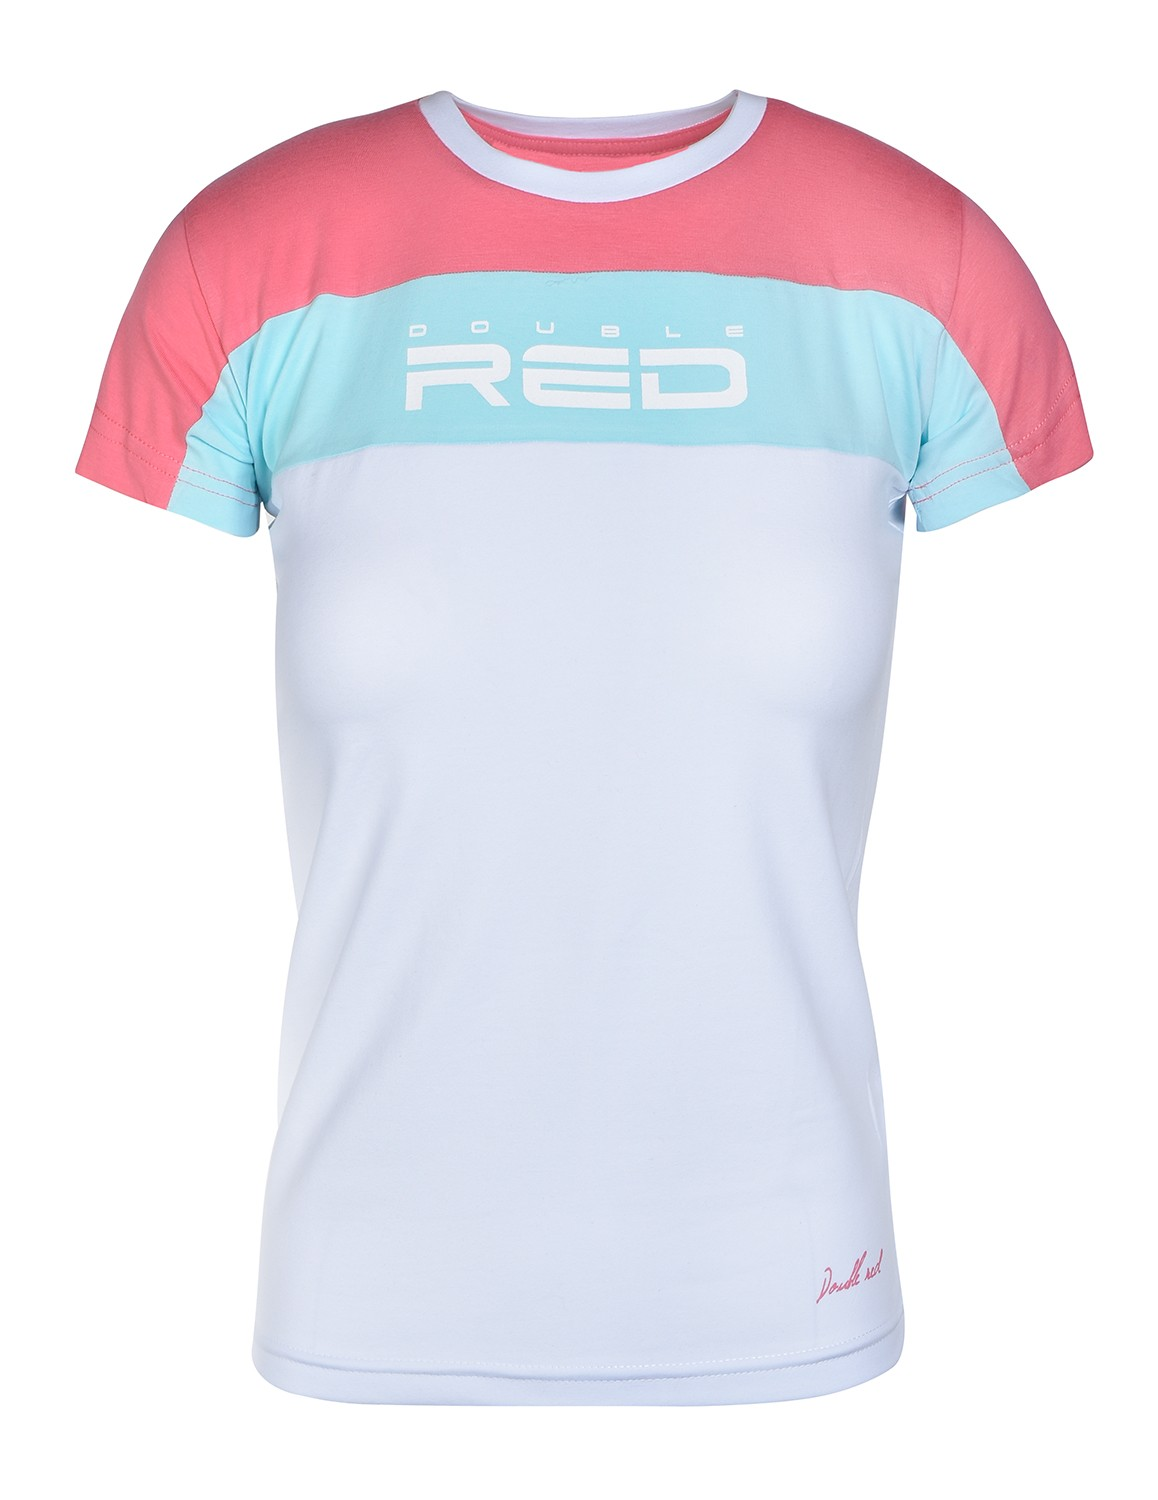 T-Shirt OUTSTANDING Pink/White